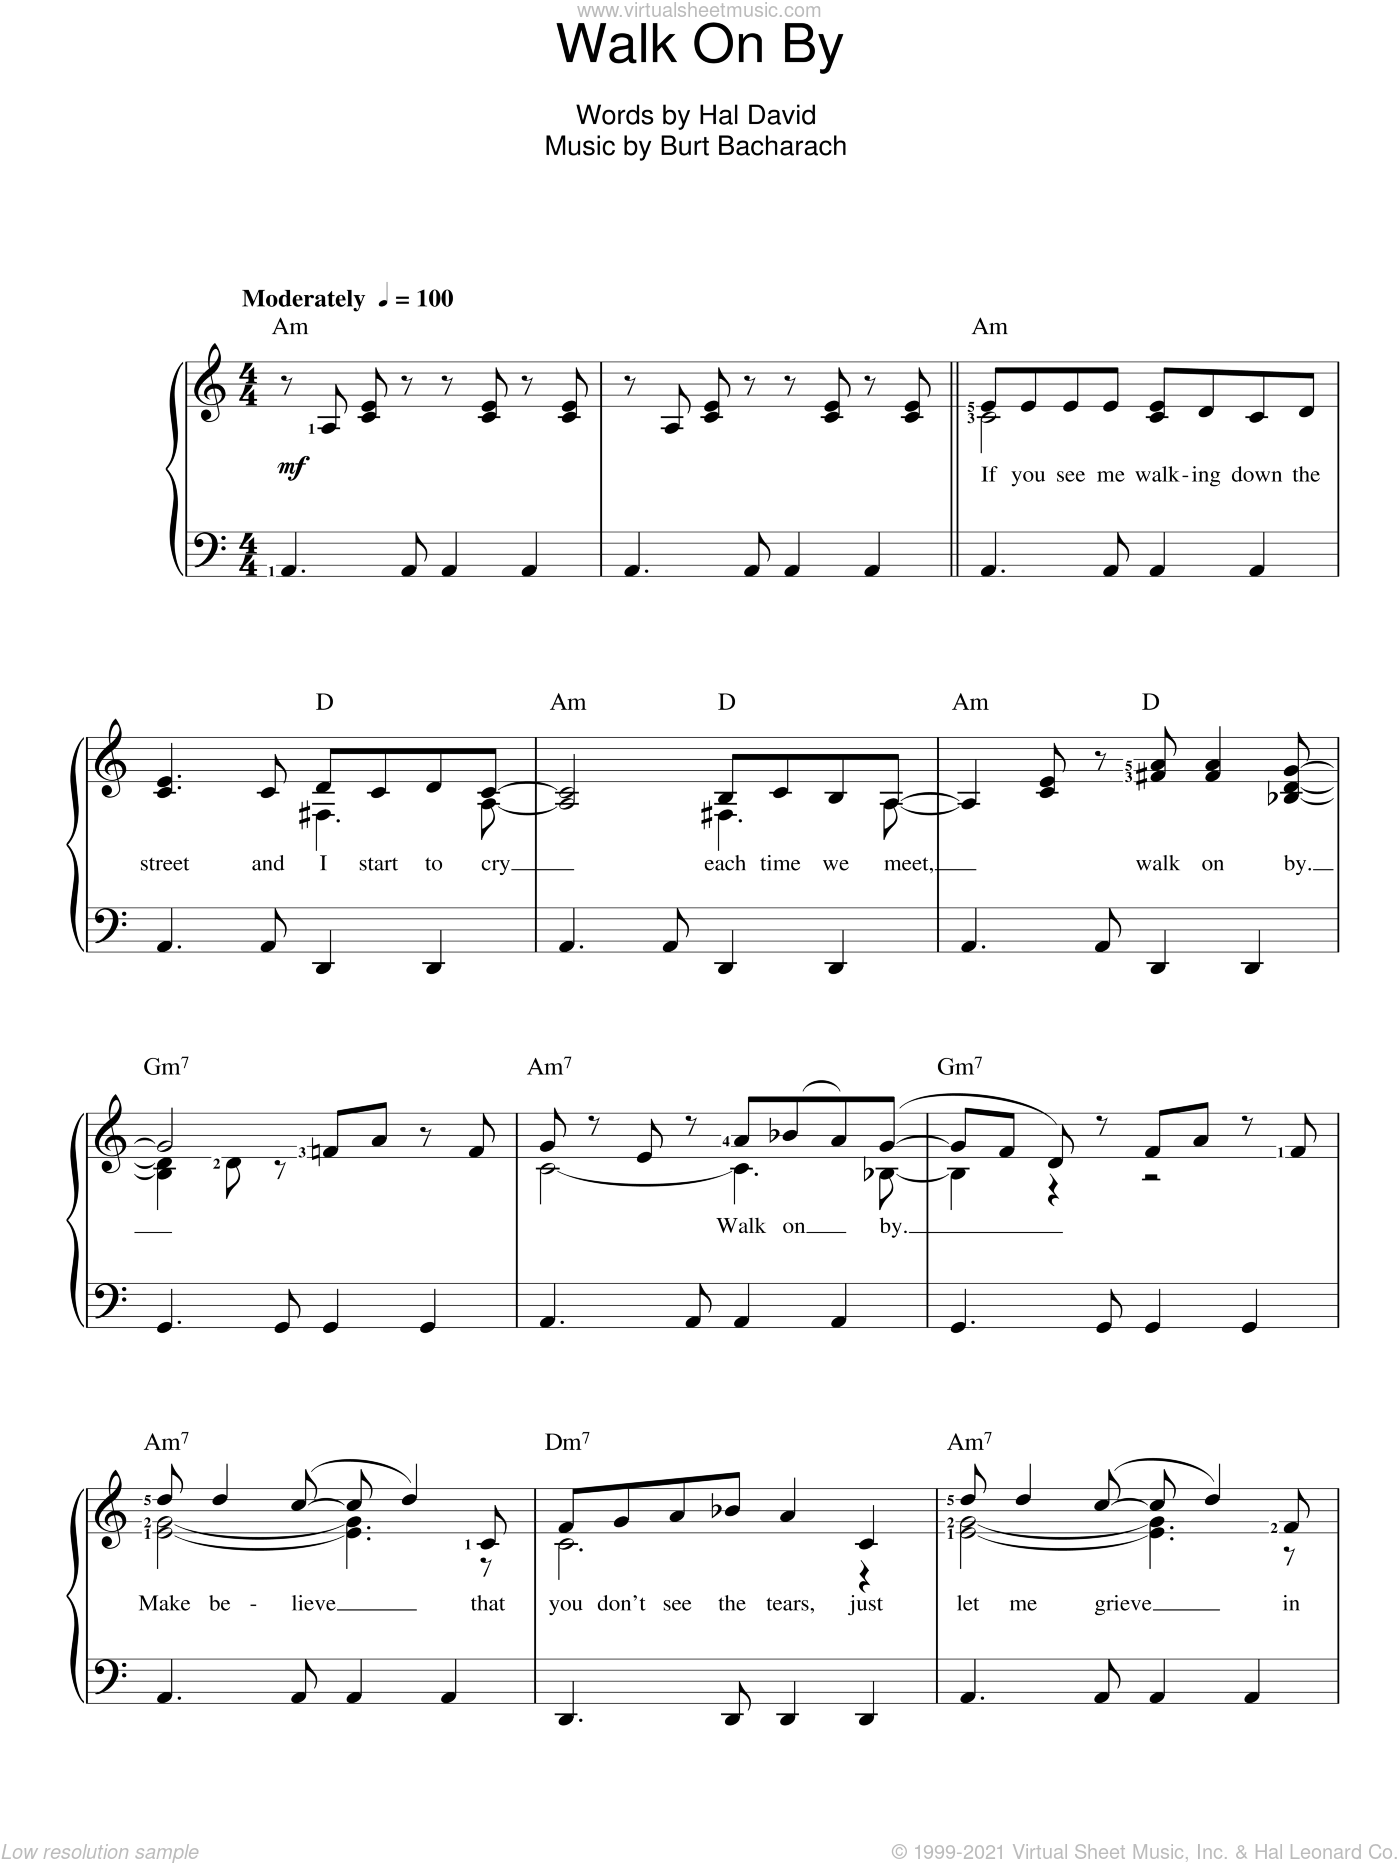 Walk On By sheet music for voice and piano by Hal David